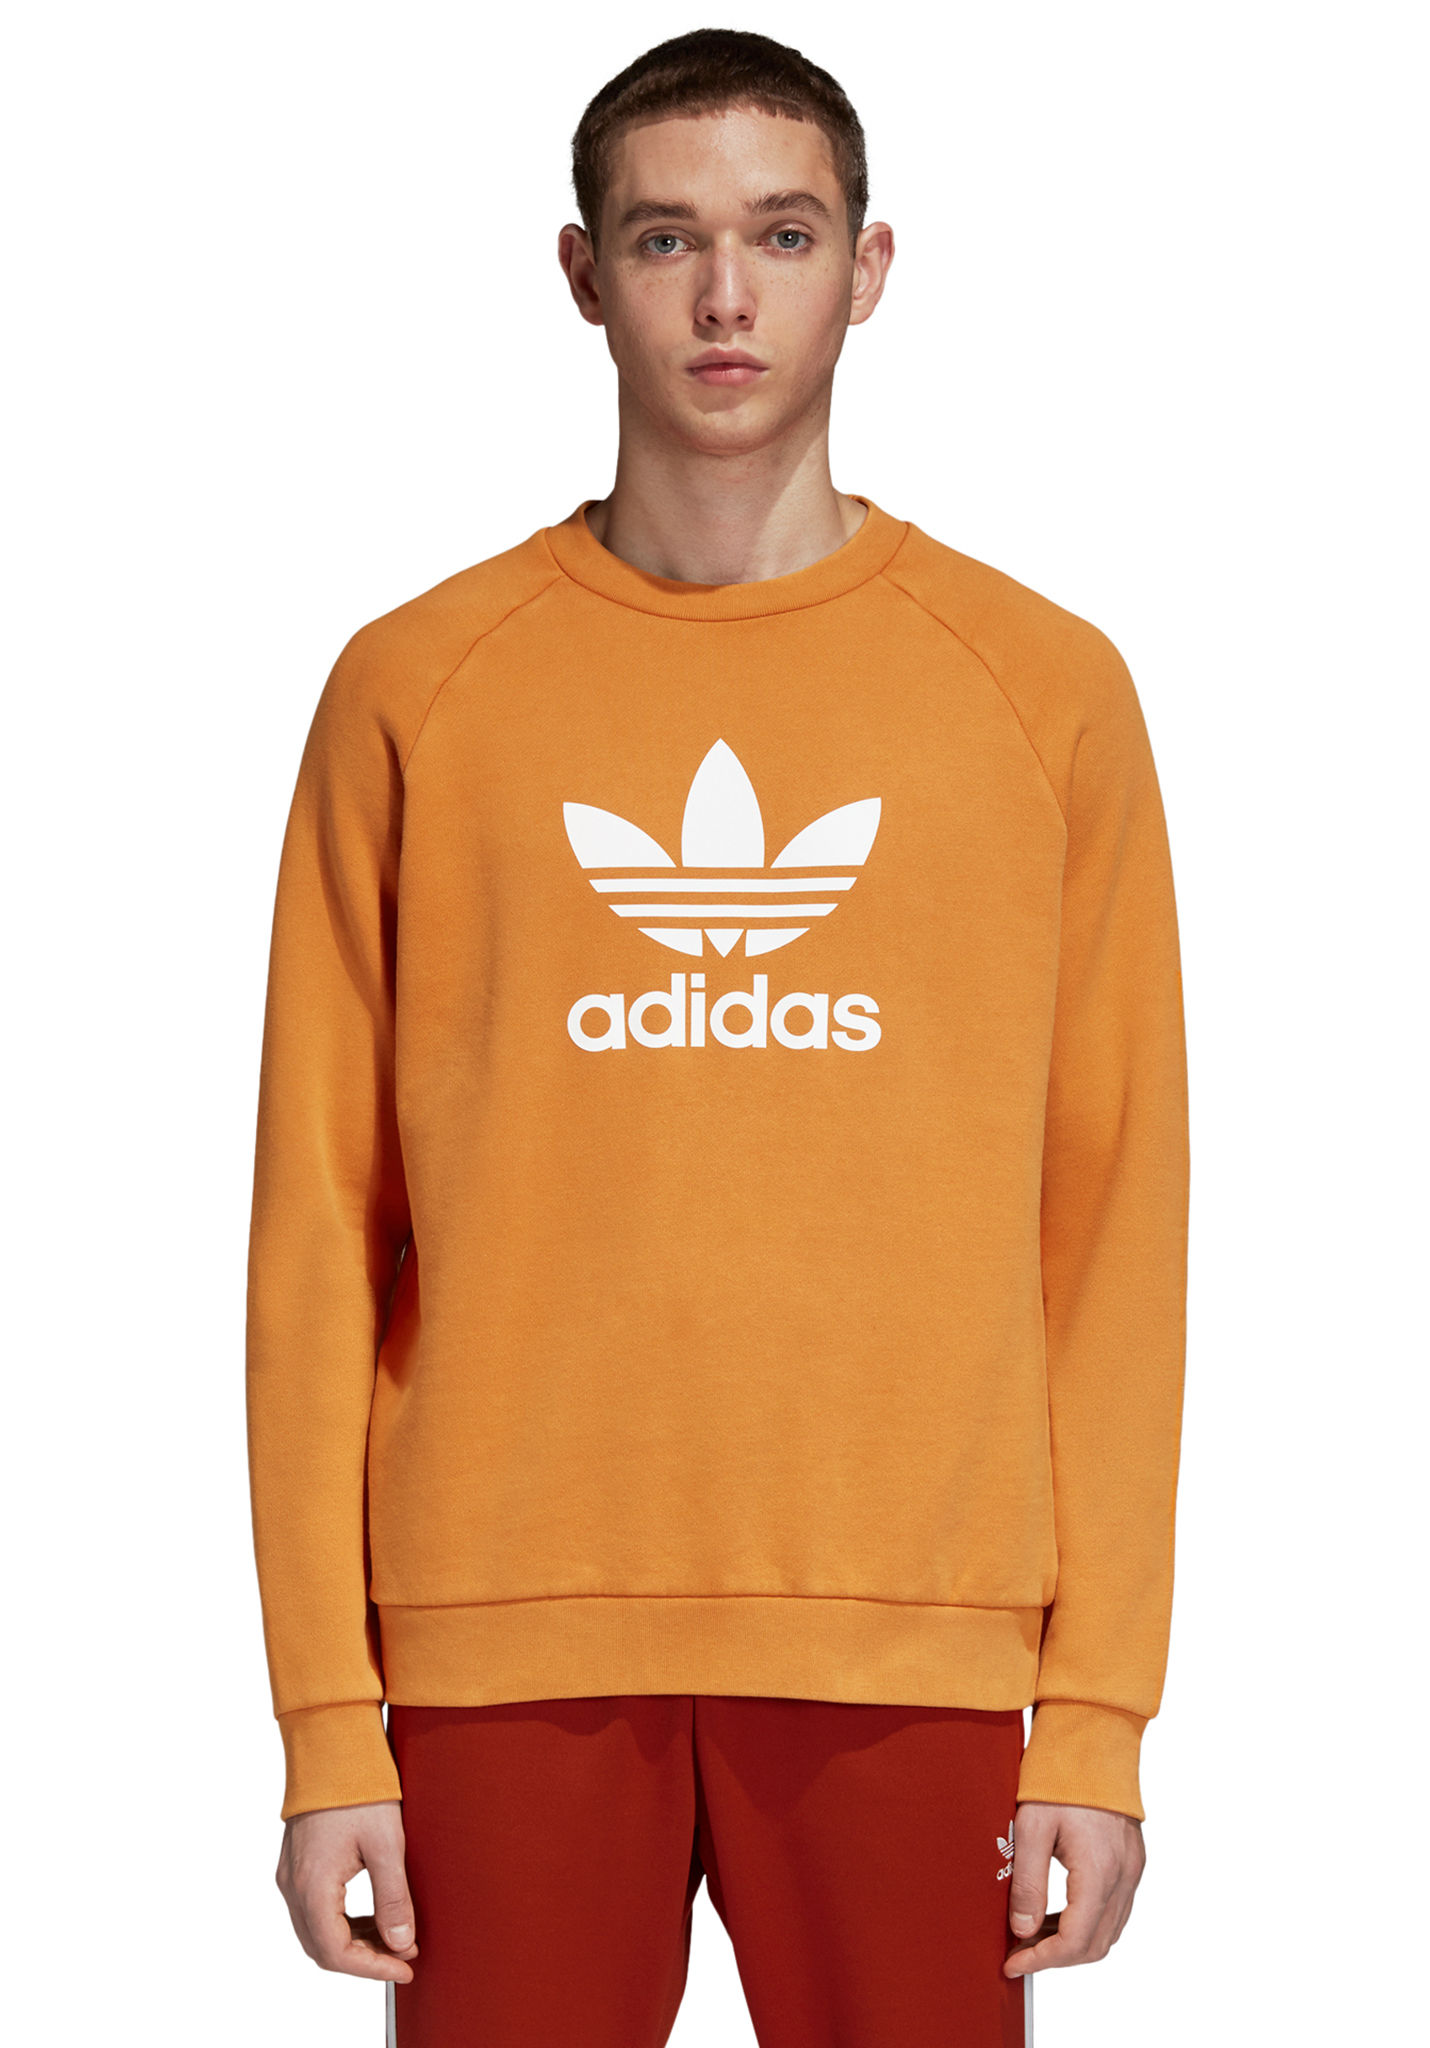 415b9814e4cb5 ADIDAS ORIGINALS Trefoil Crew - Sweat pour Homme - Orange - Planet Sports